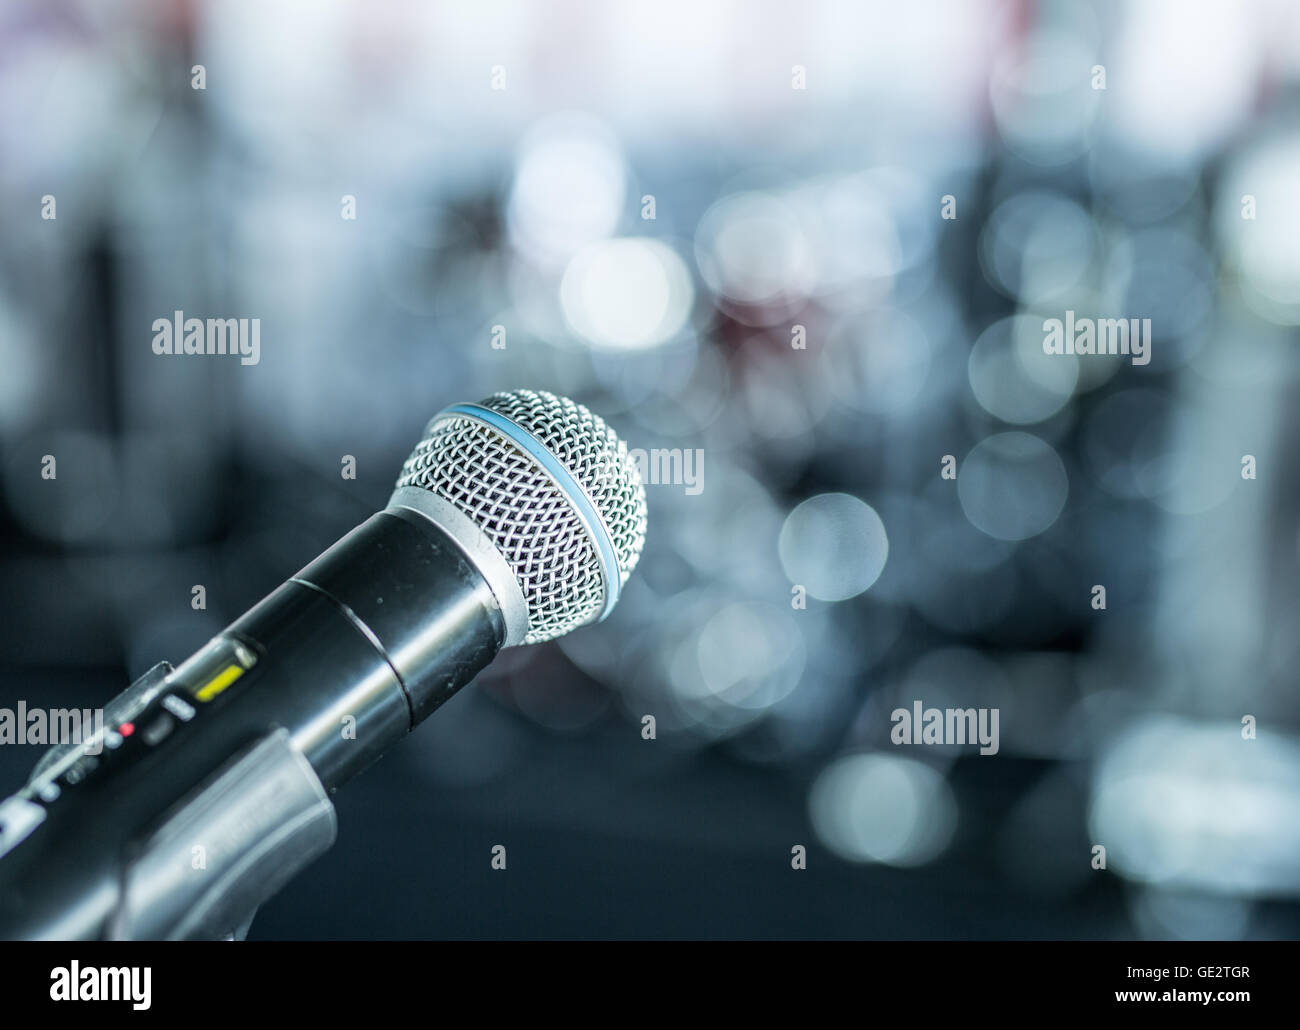 Closeup shot of microphone. Blurred lights on the background. - Stock Image